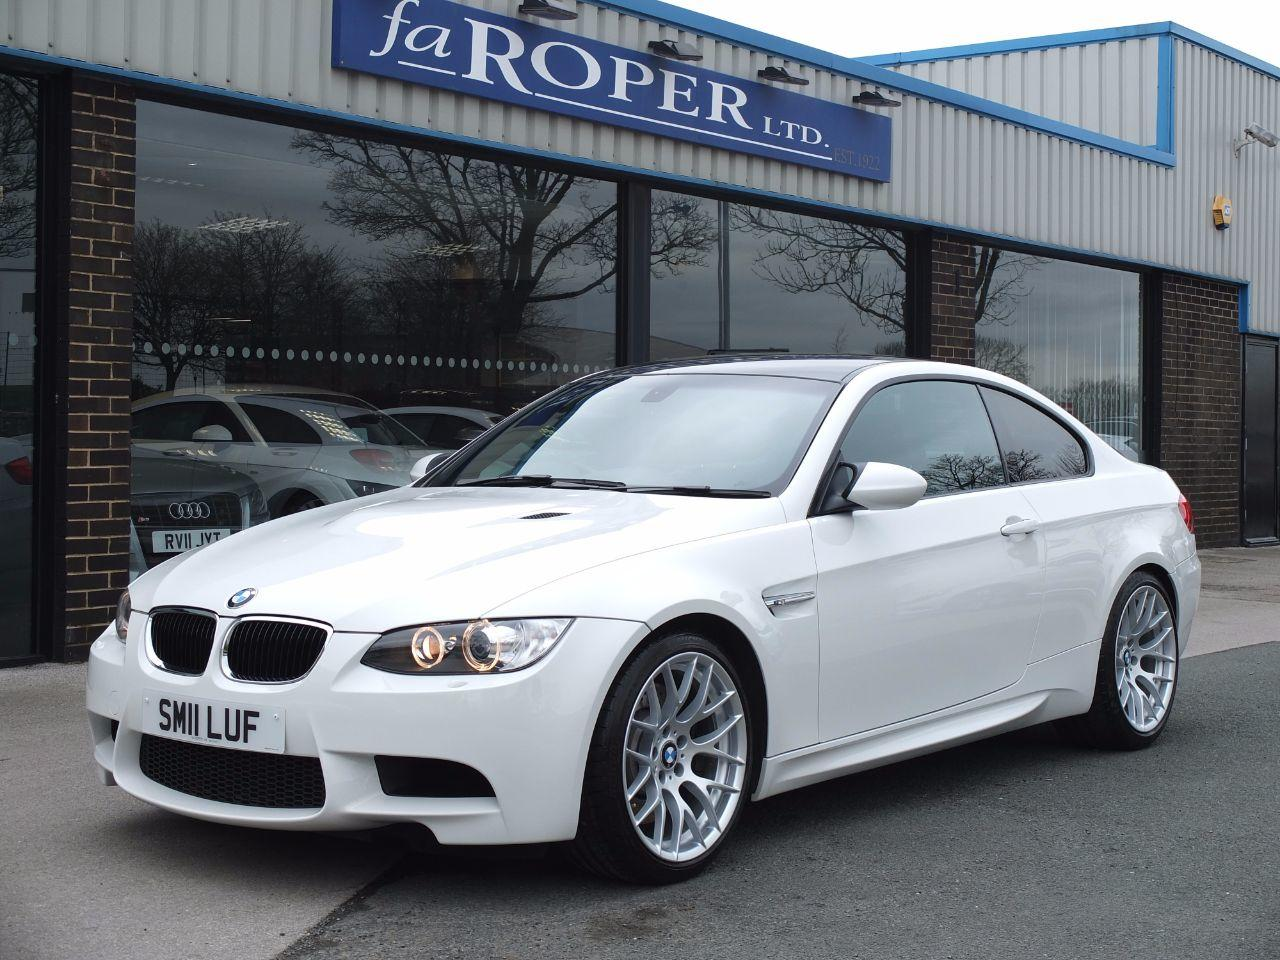 BMW M3 M3 4.0 V8 Coupe Competition Pack Coupe Petrol Alpine WhiteBMW M3 M3 4.0 V8 Coupe Competition Pack Coupe Petrol Alpine White at fa Roper Ltd Bradford